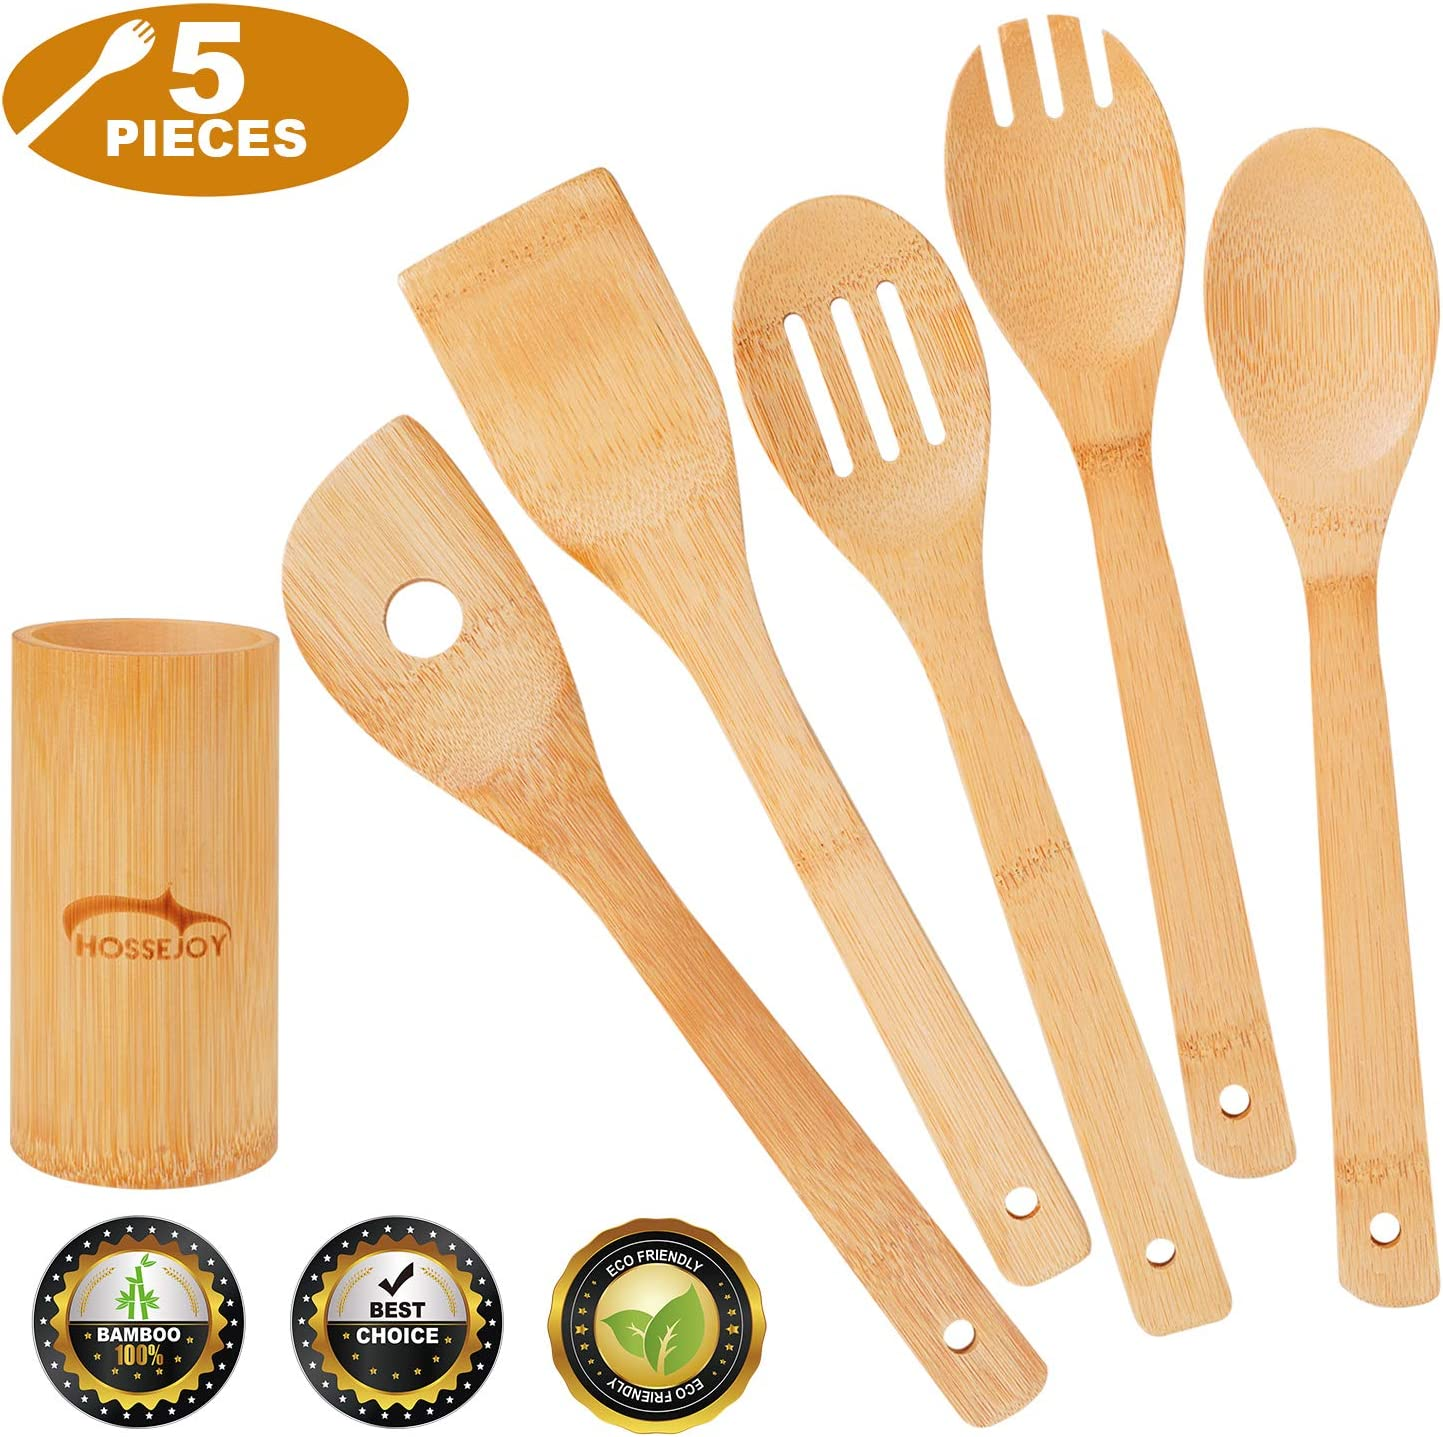 Eco Friendly and Easy To Clean Widousy Bamboo Cooking Utensil Set Bamboo Utensils Won/'t Scratch Your Pots And Pans 6 Piece Set incl 5 bamboo Kitchen Utensils and Elegant Holder